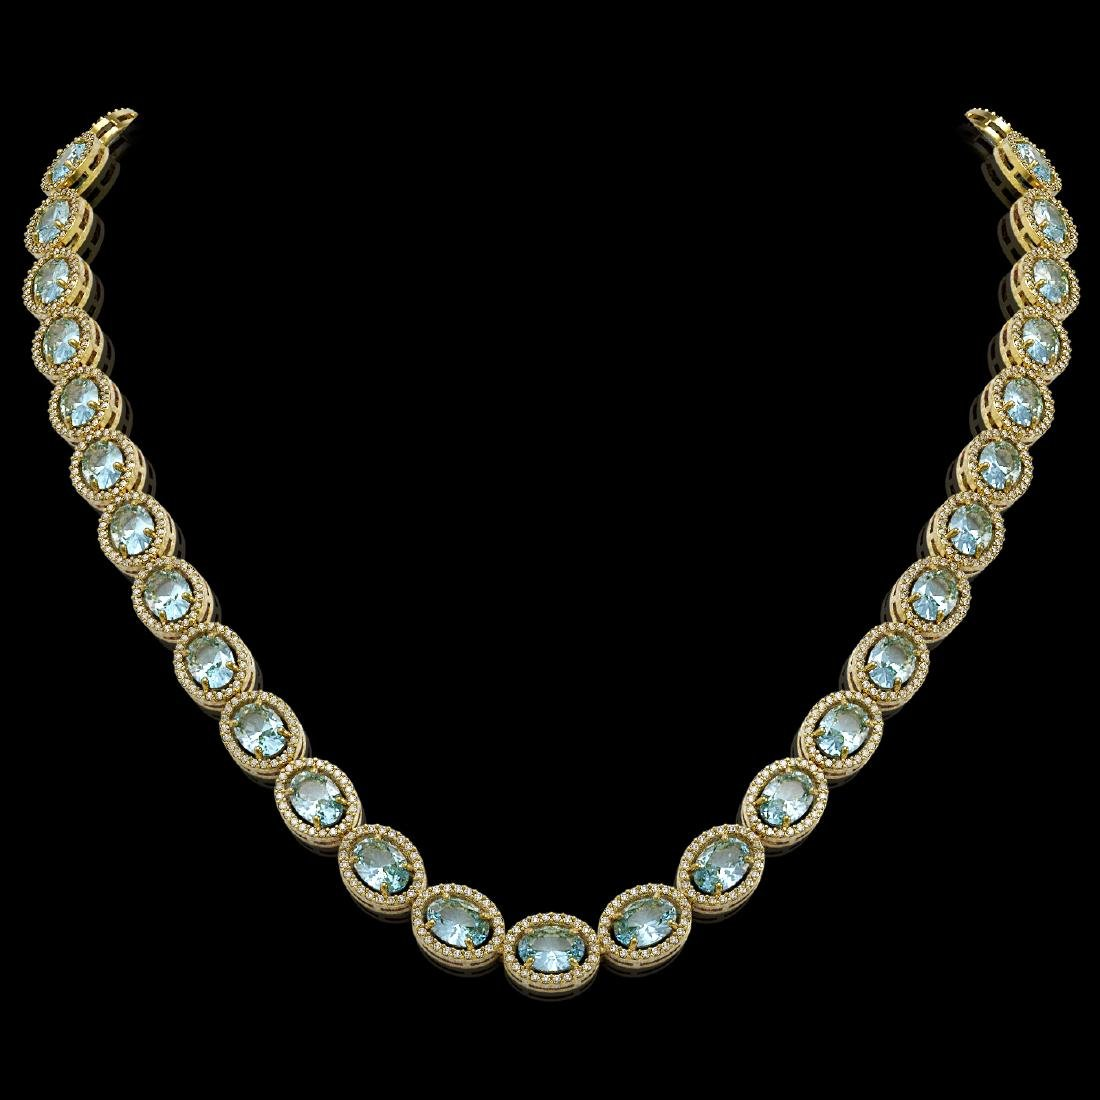 41.88 CTW Aquamarine & Diamond Halo Necklace 10K Yellow